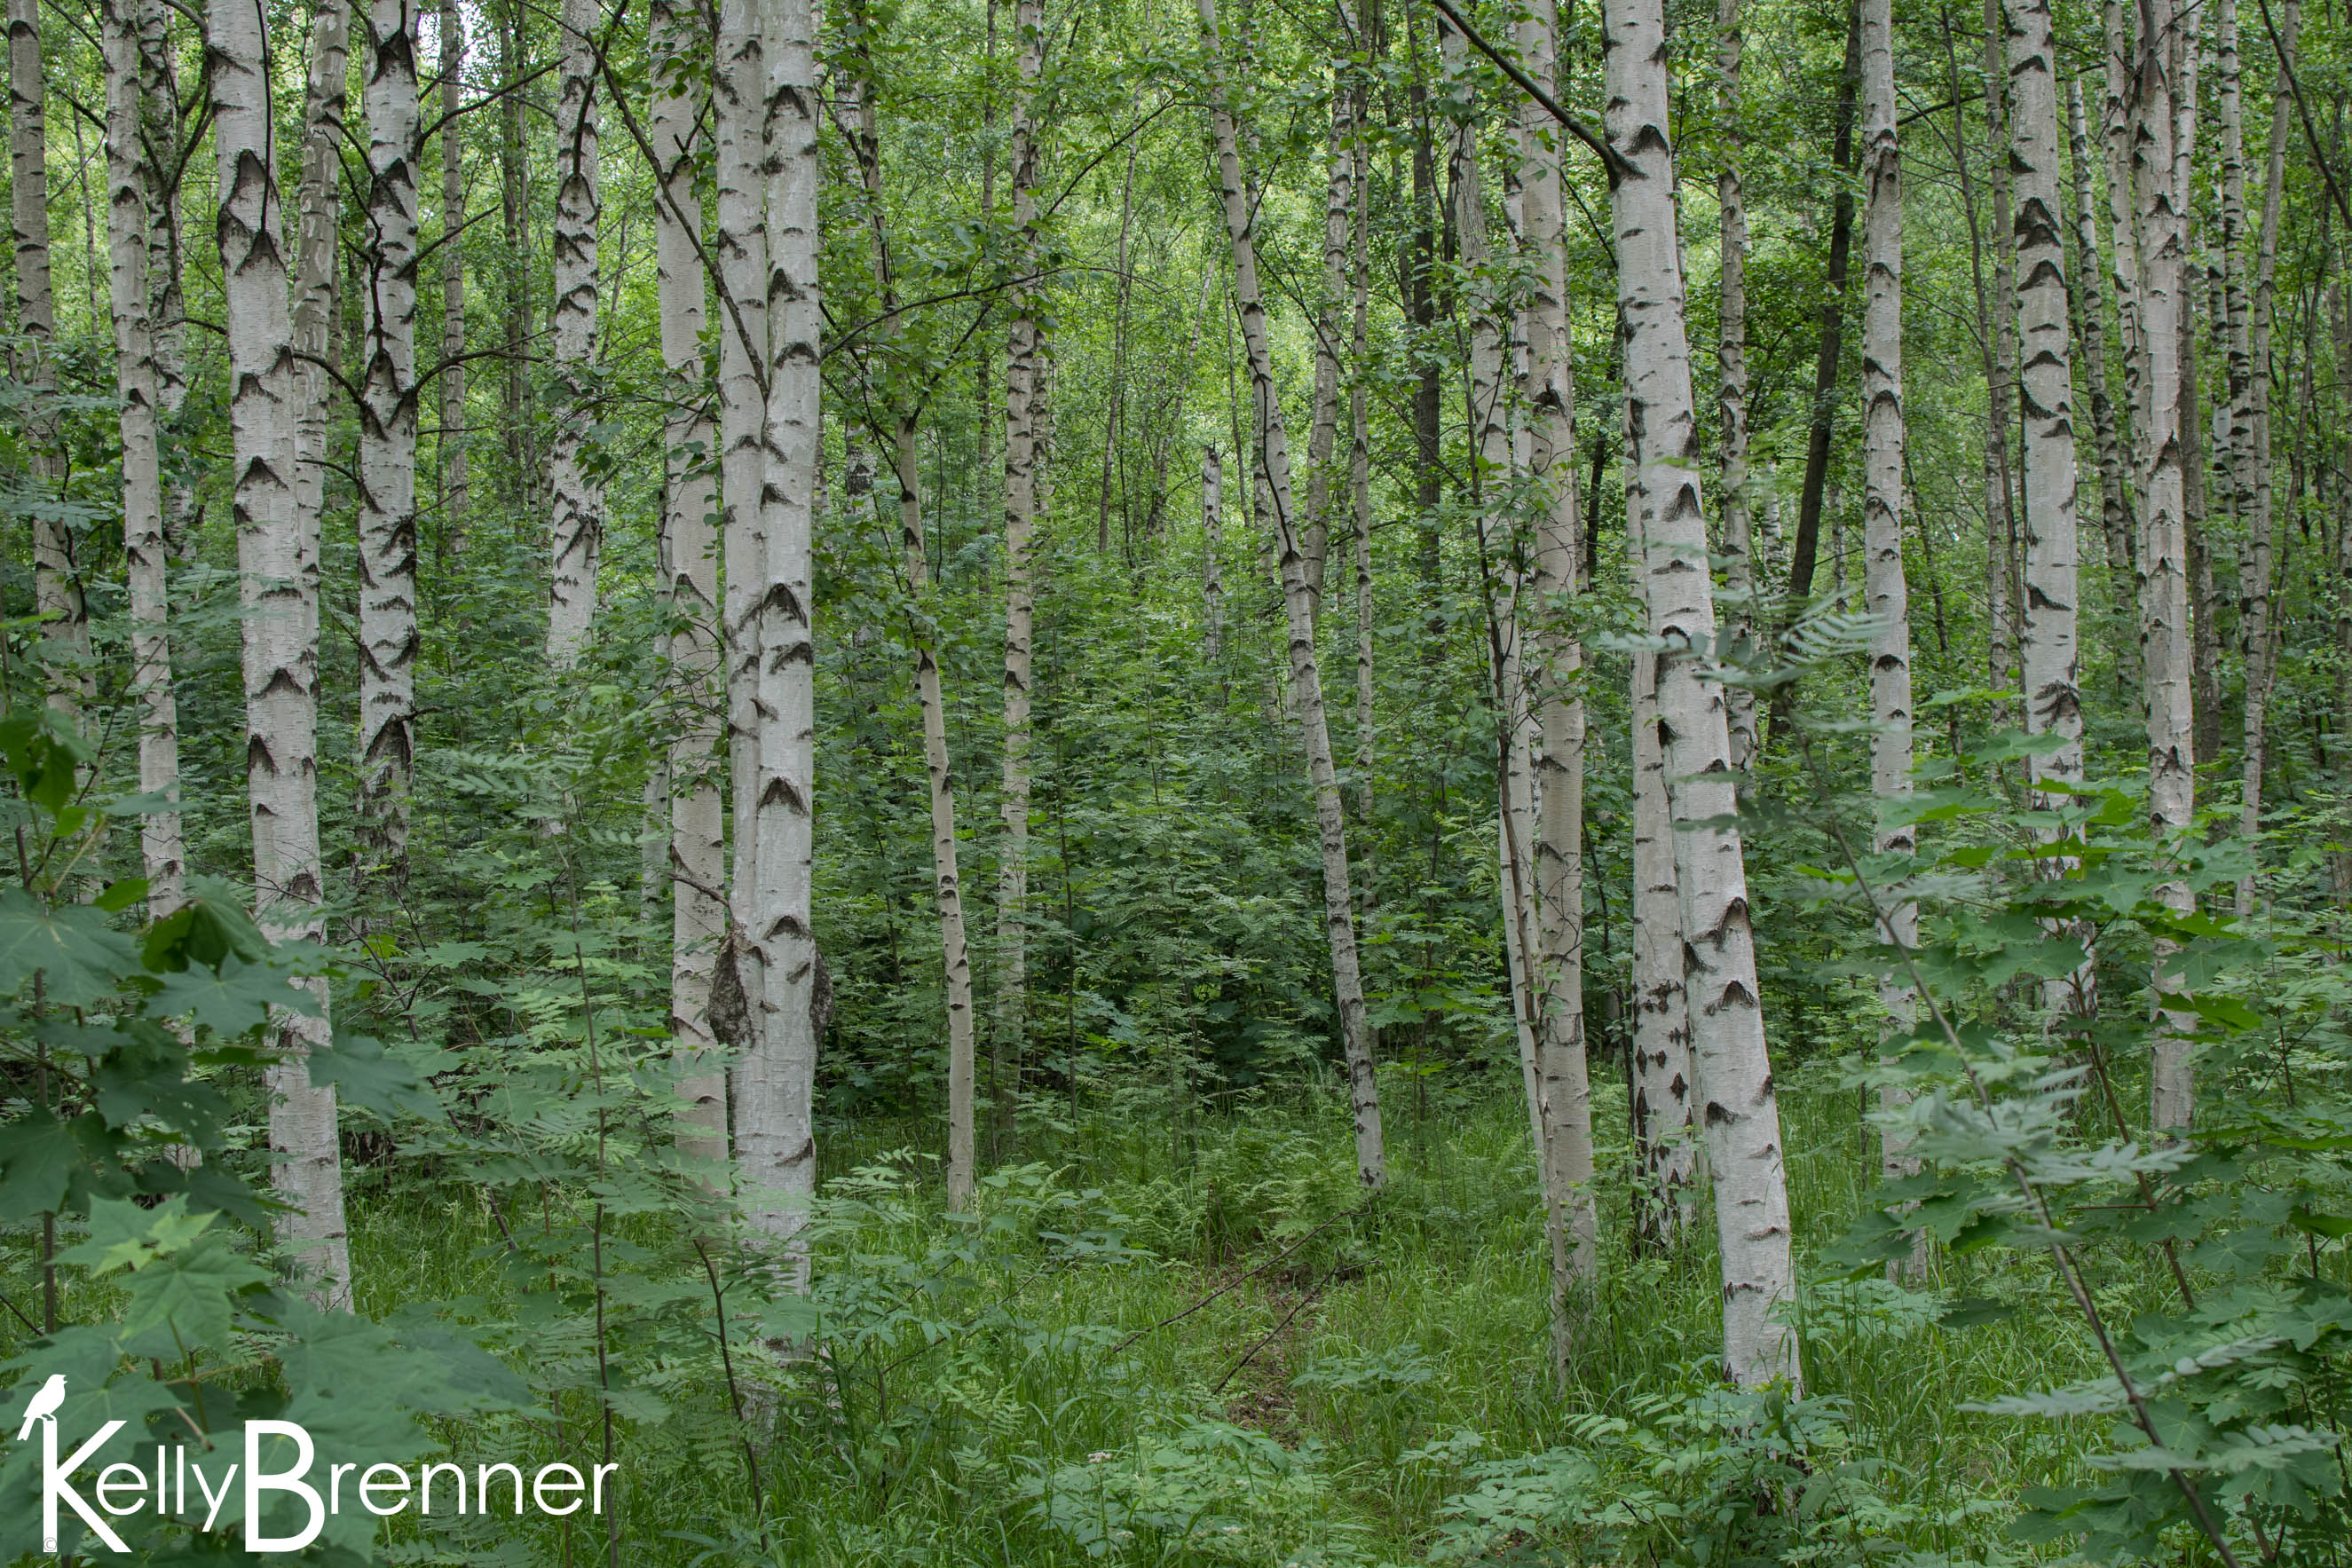 Field Journal: Viikki Nature Reserve